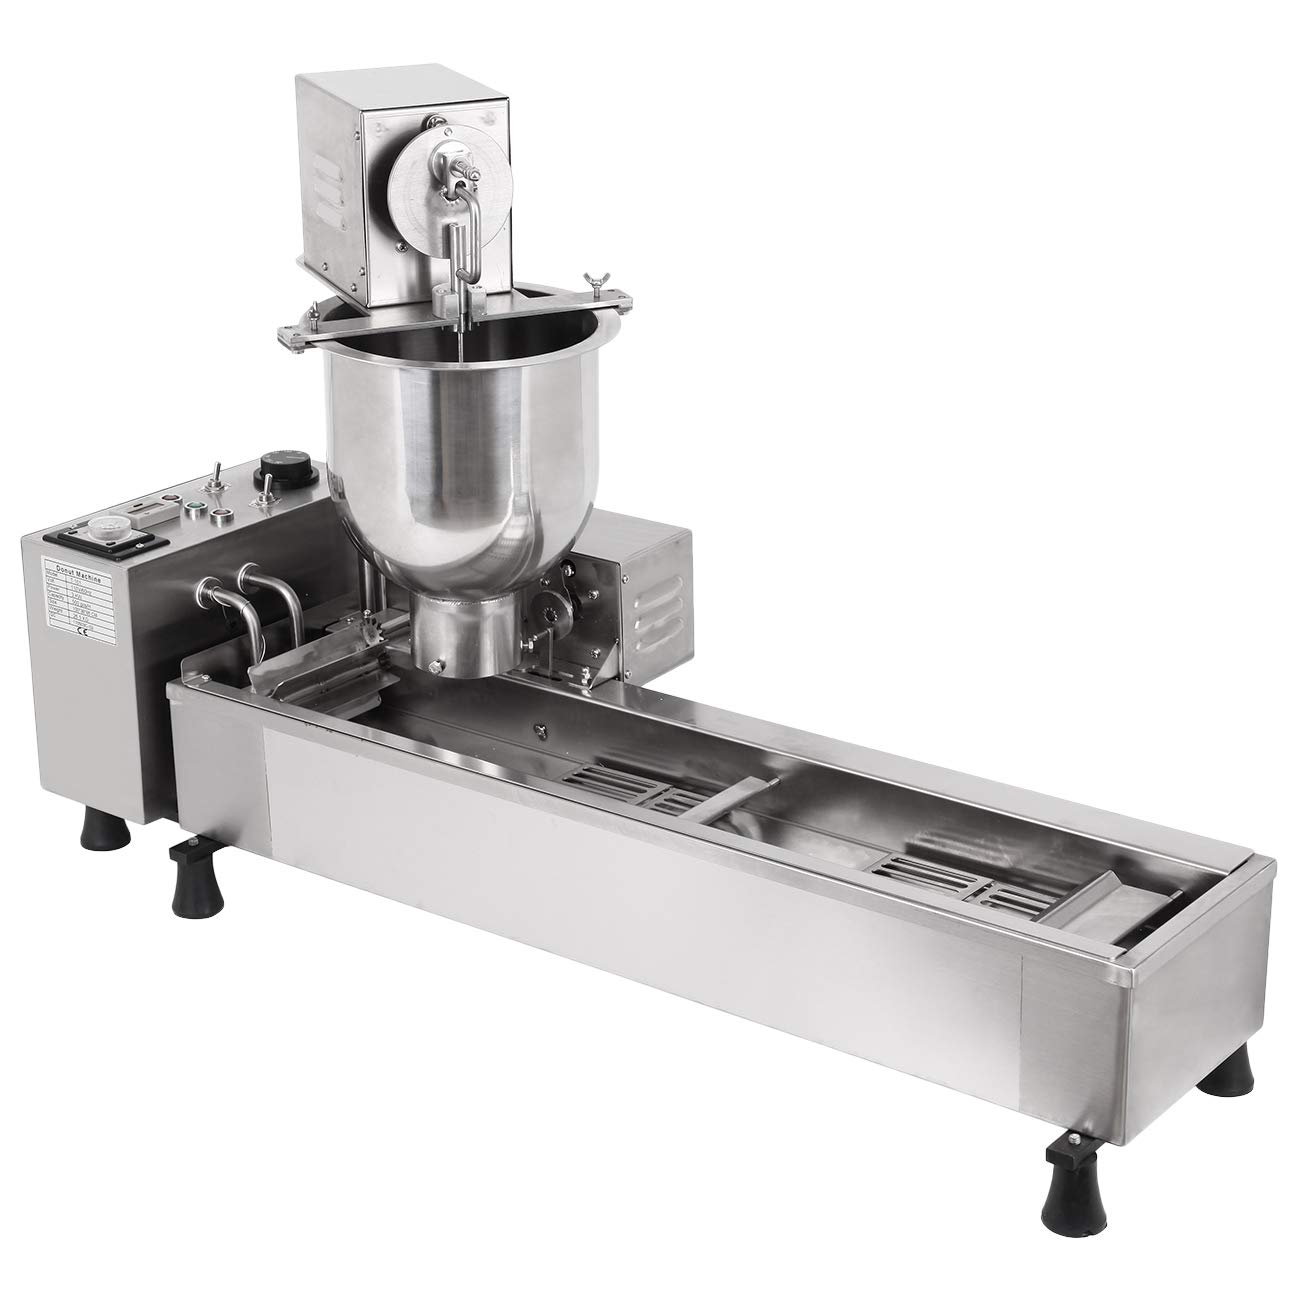 Ridgeyard Commercial Automatic Donut Making Machine Auto Donut Maker Machine with 3 Sizes Molds and 7L Bucket 110V 3000W, Ship From US by Ridgeyard (Image #2)